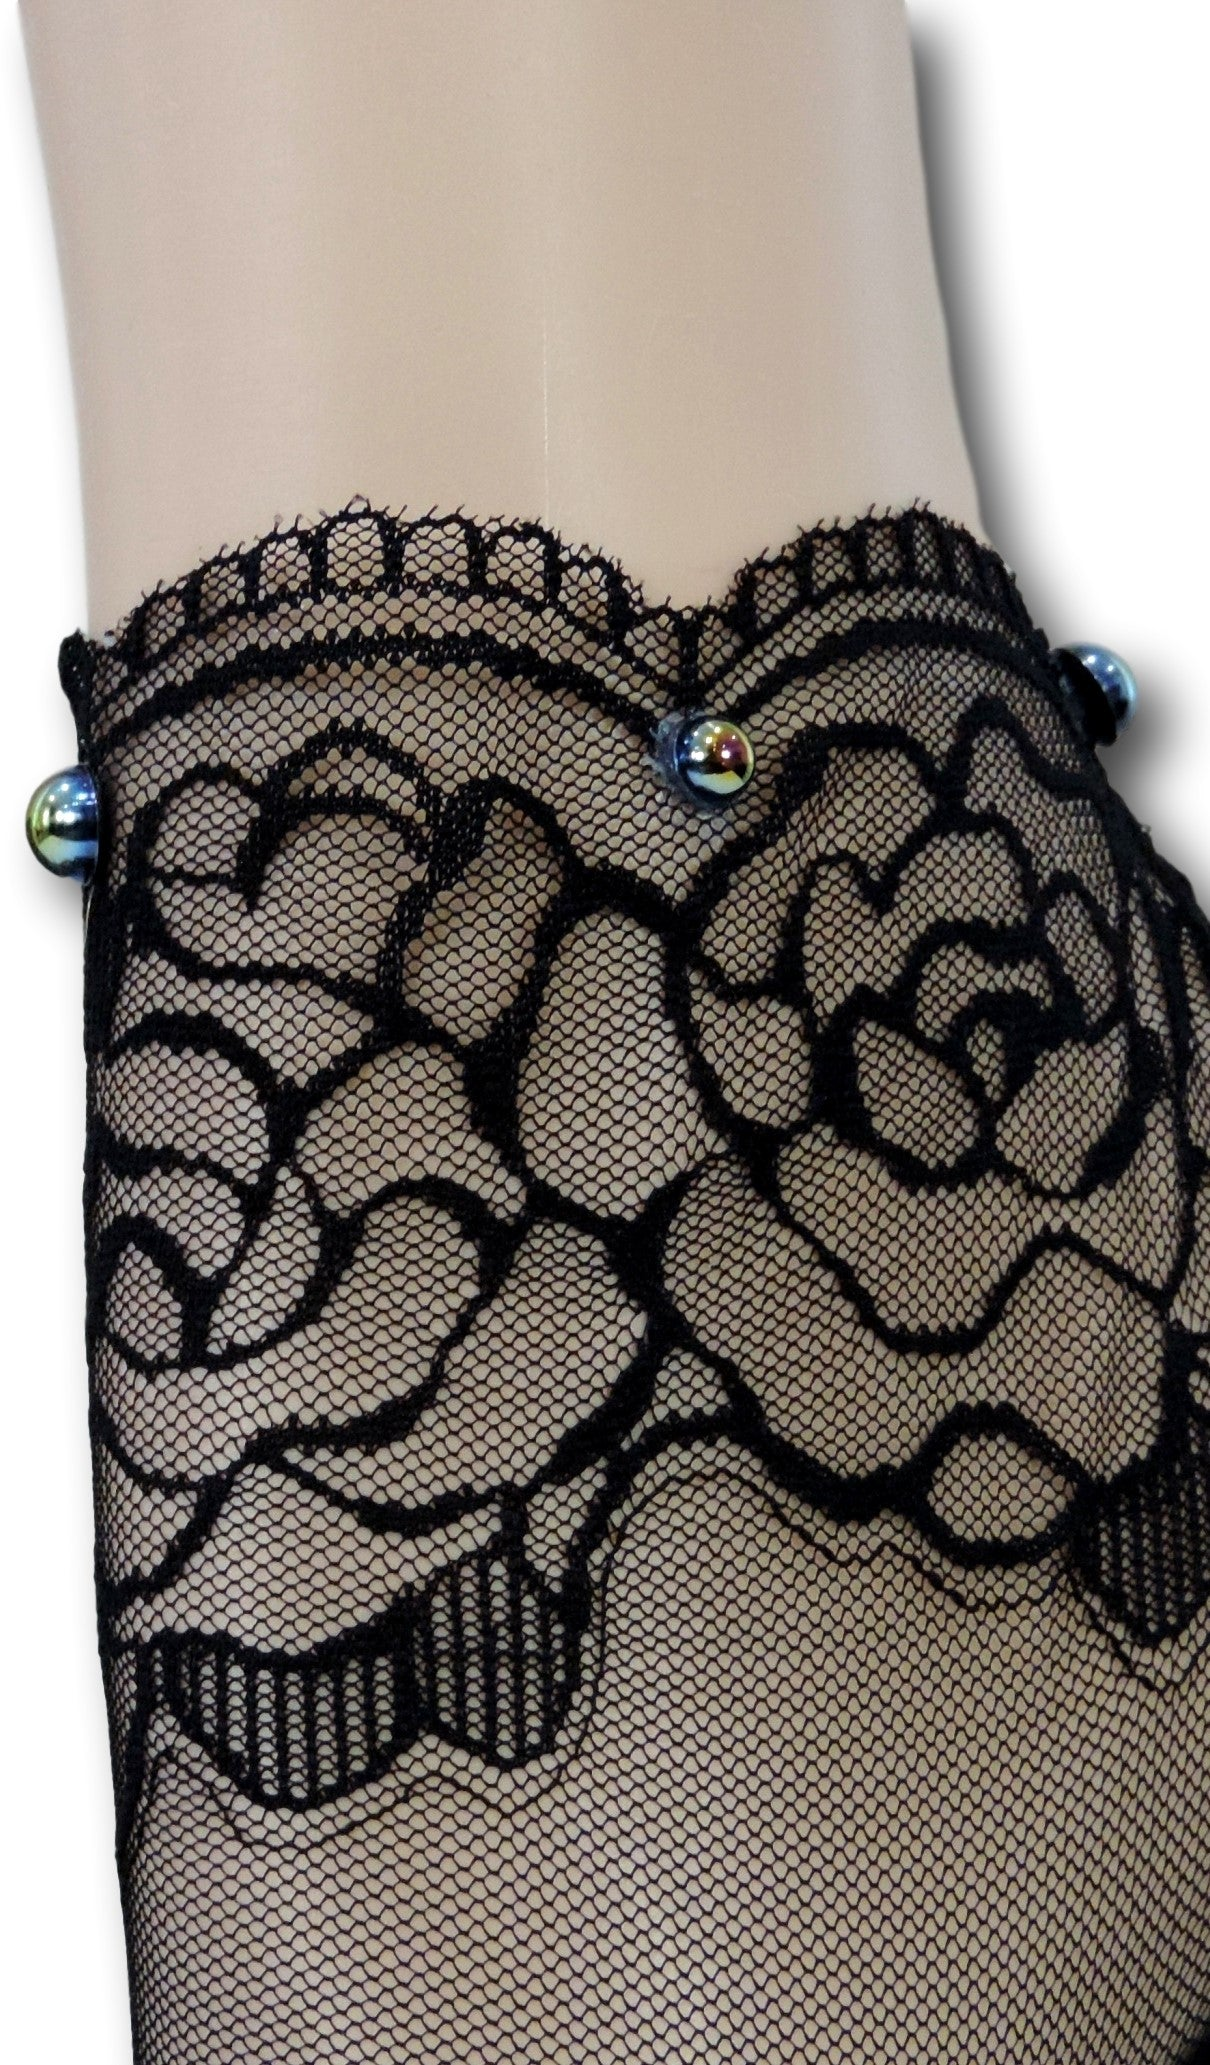 Black Rose Ankle Sheer Socks with beads